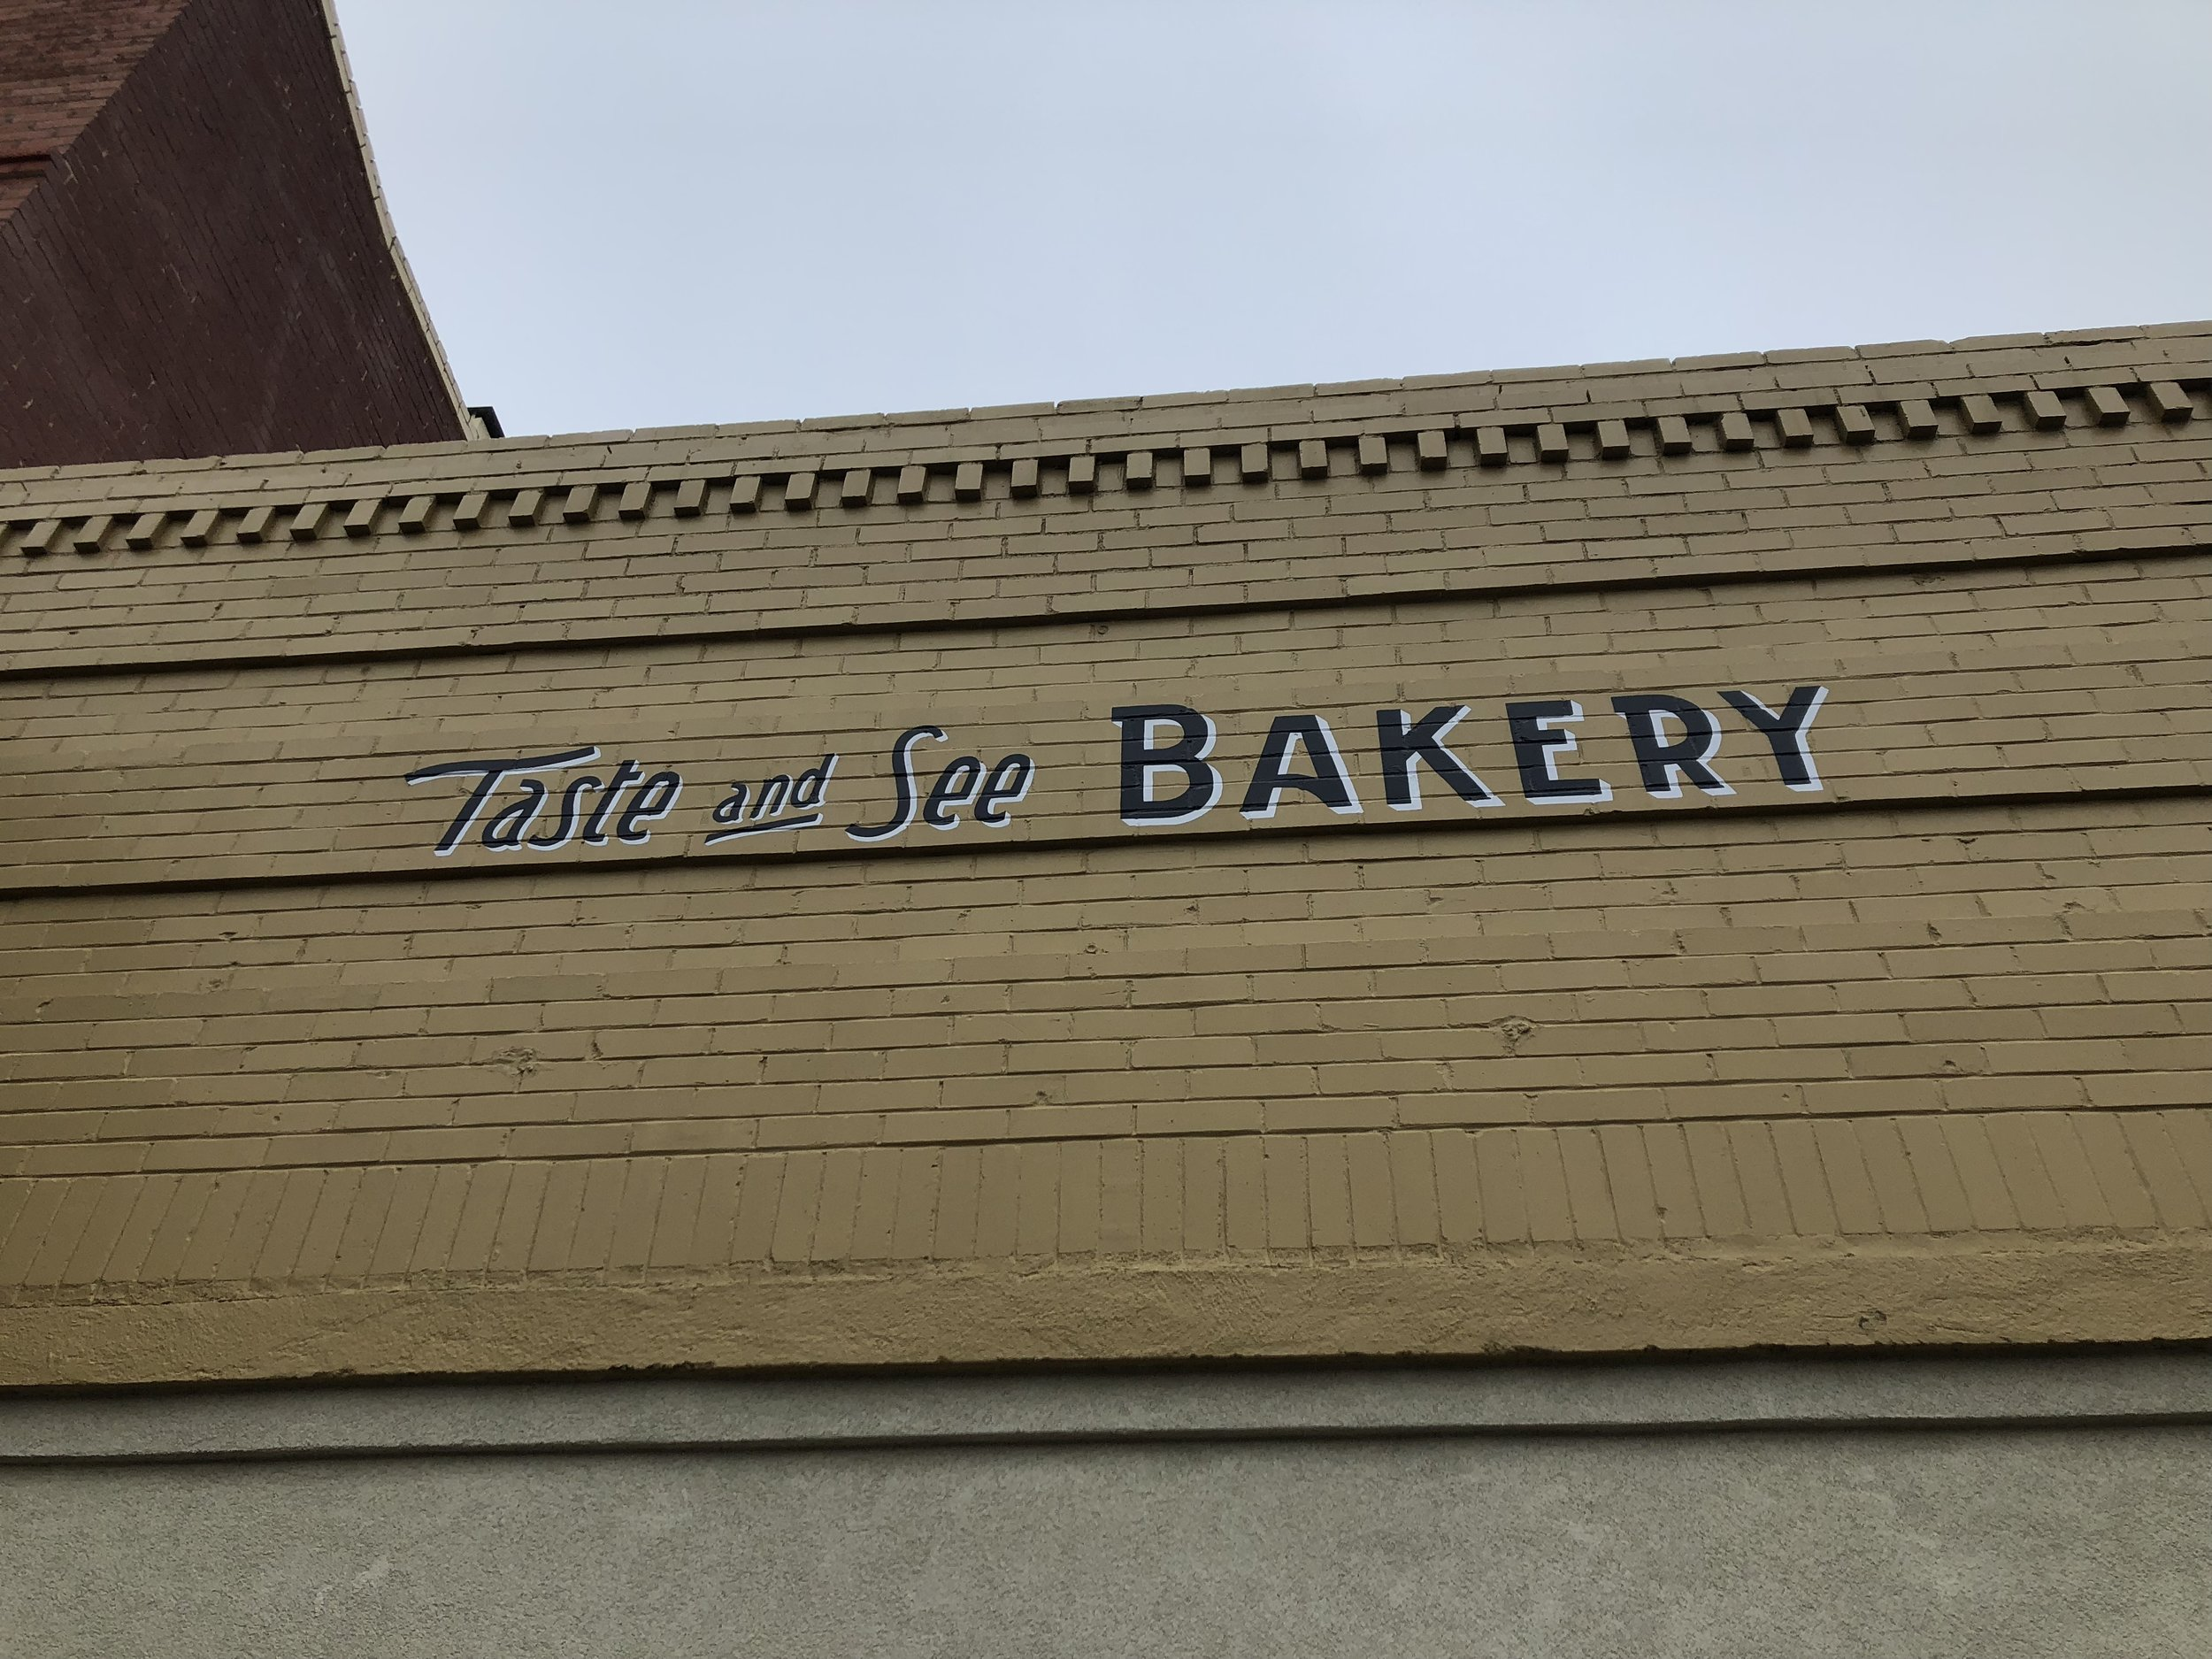 The fantastic bakery we warmed up at.